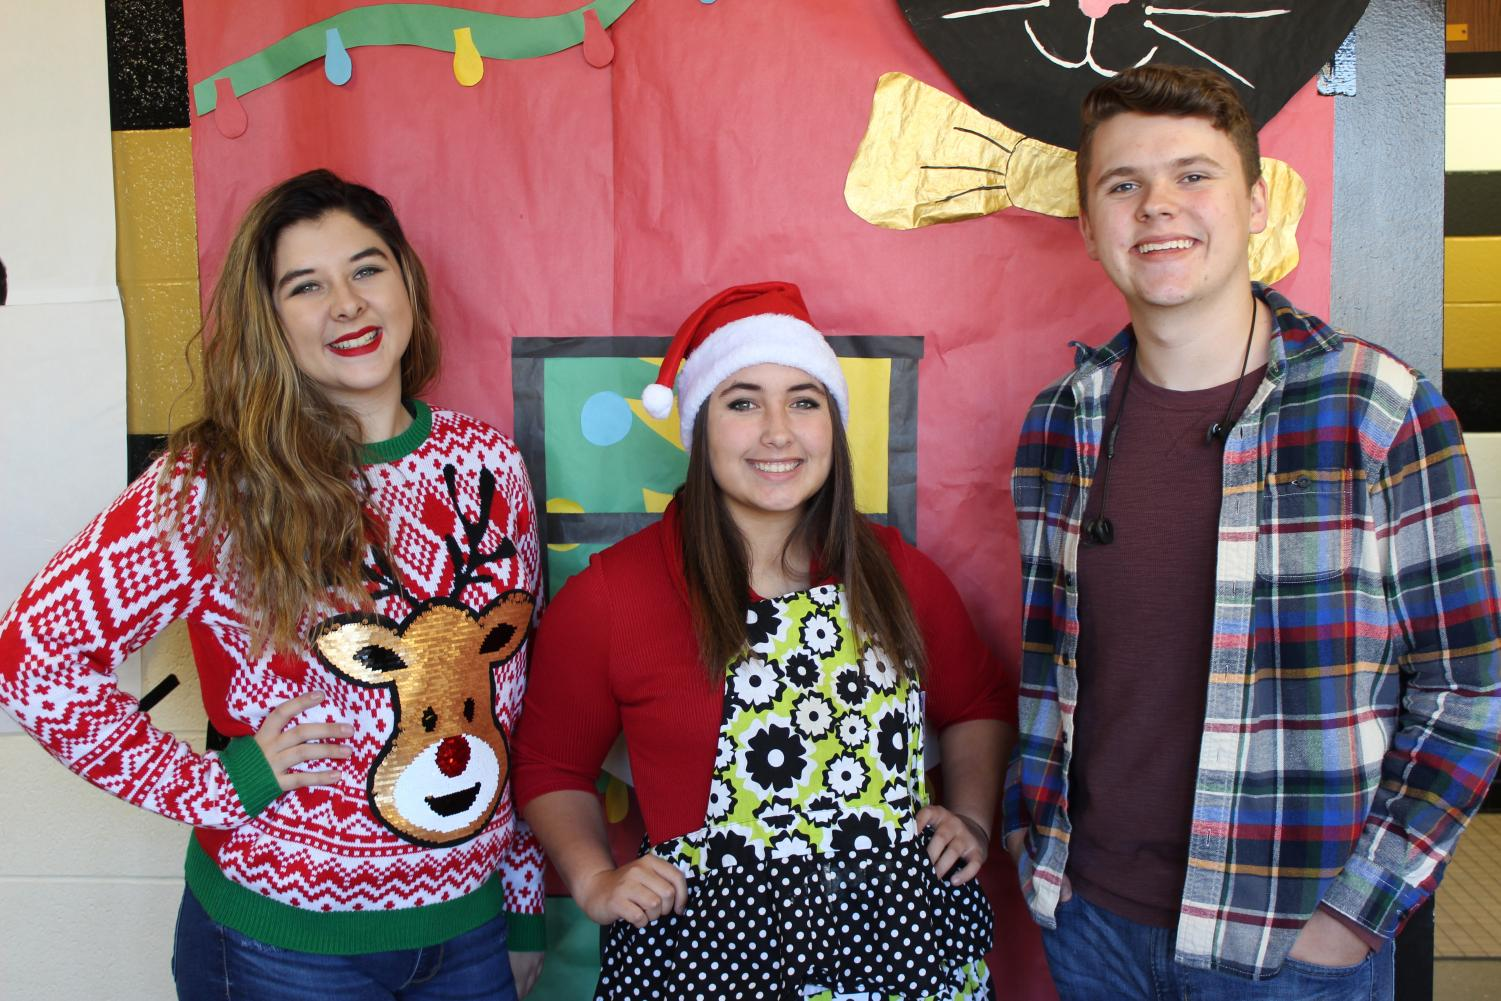 Student Body officers (from left to right) Sara White, Haley Gilmore, and Skylar Tarkington